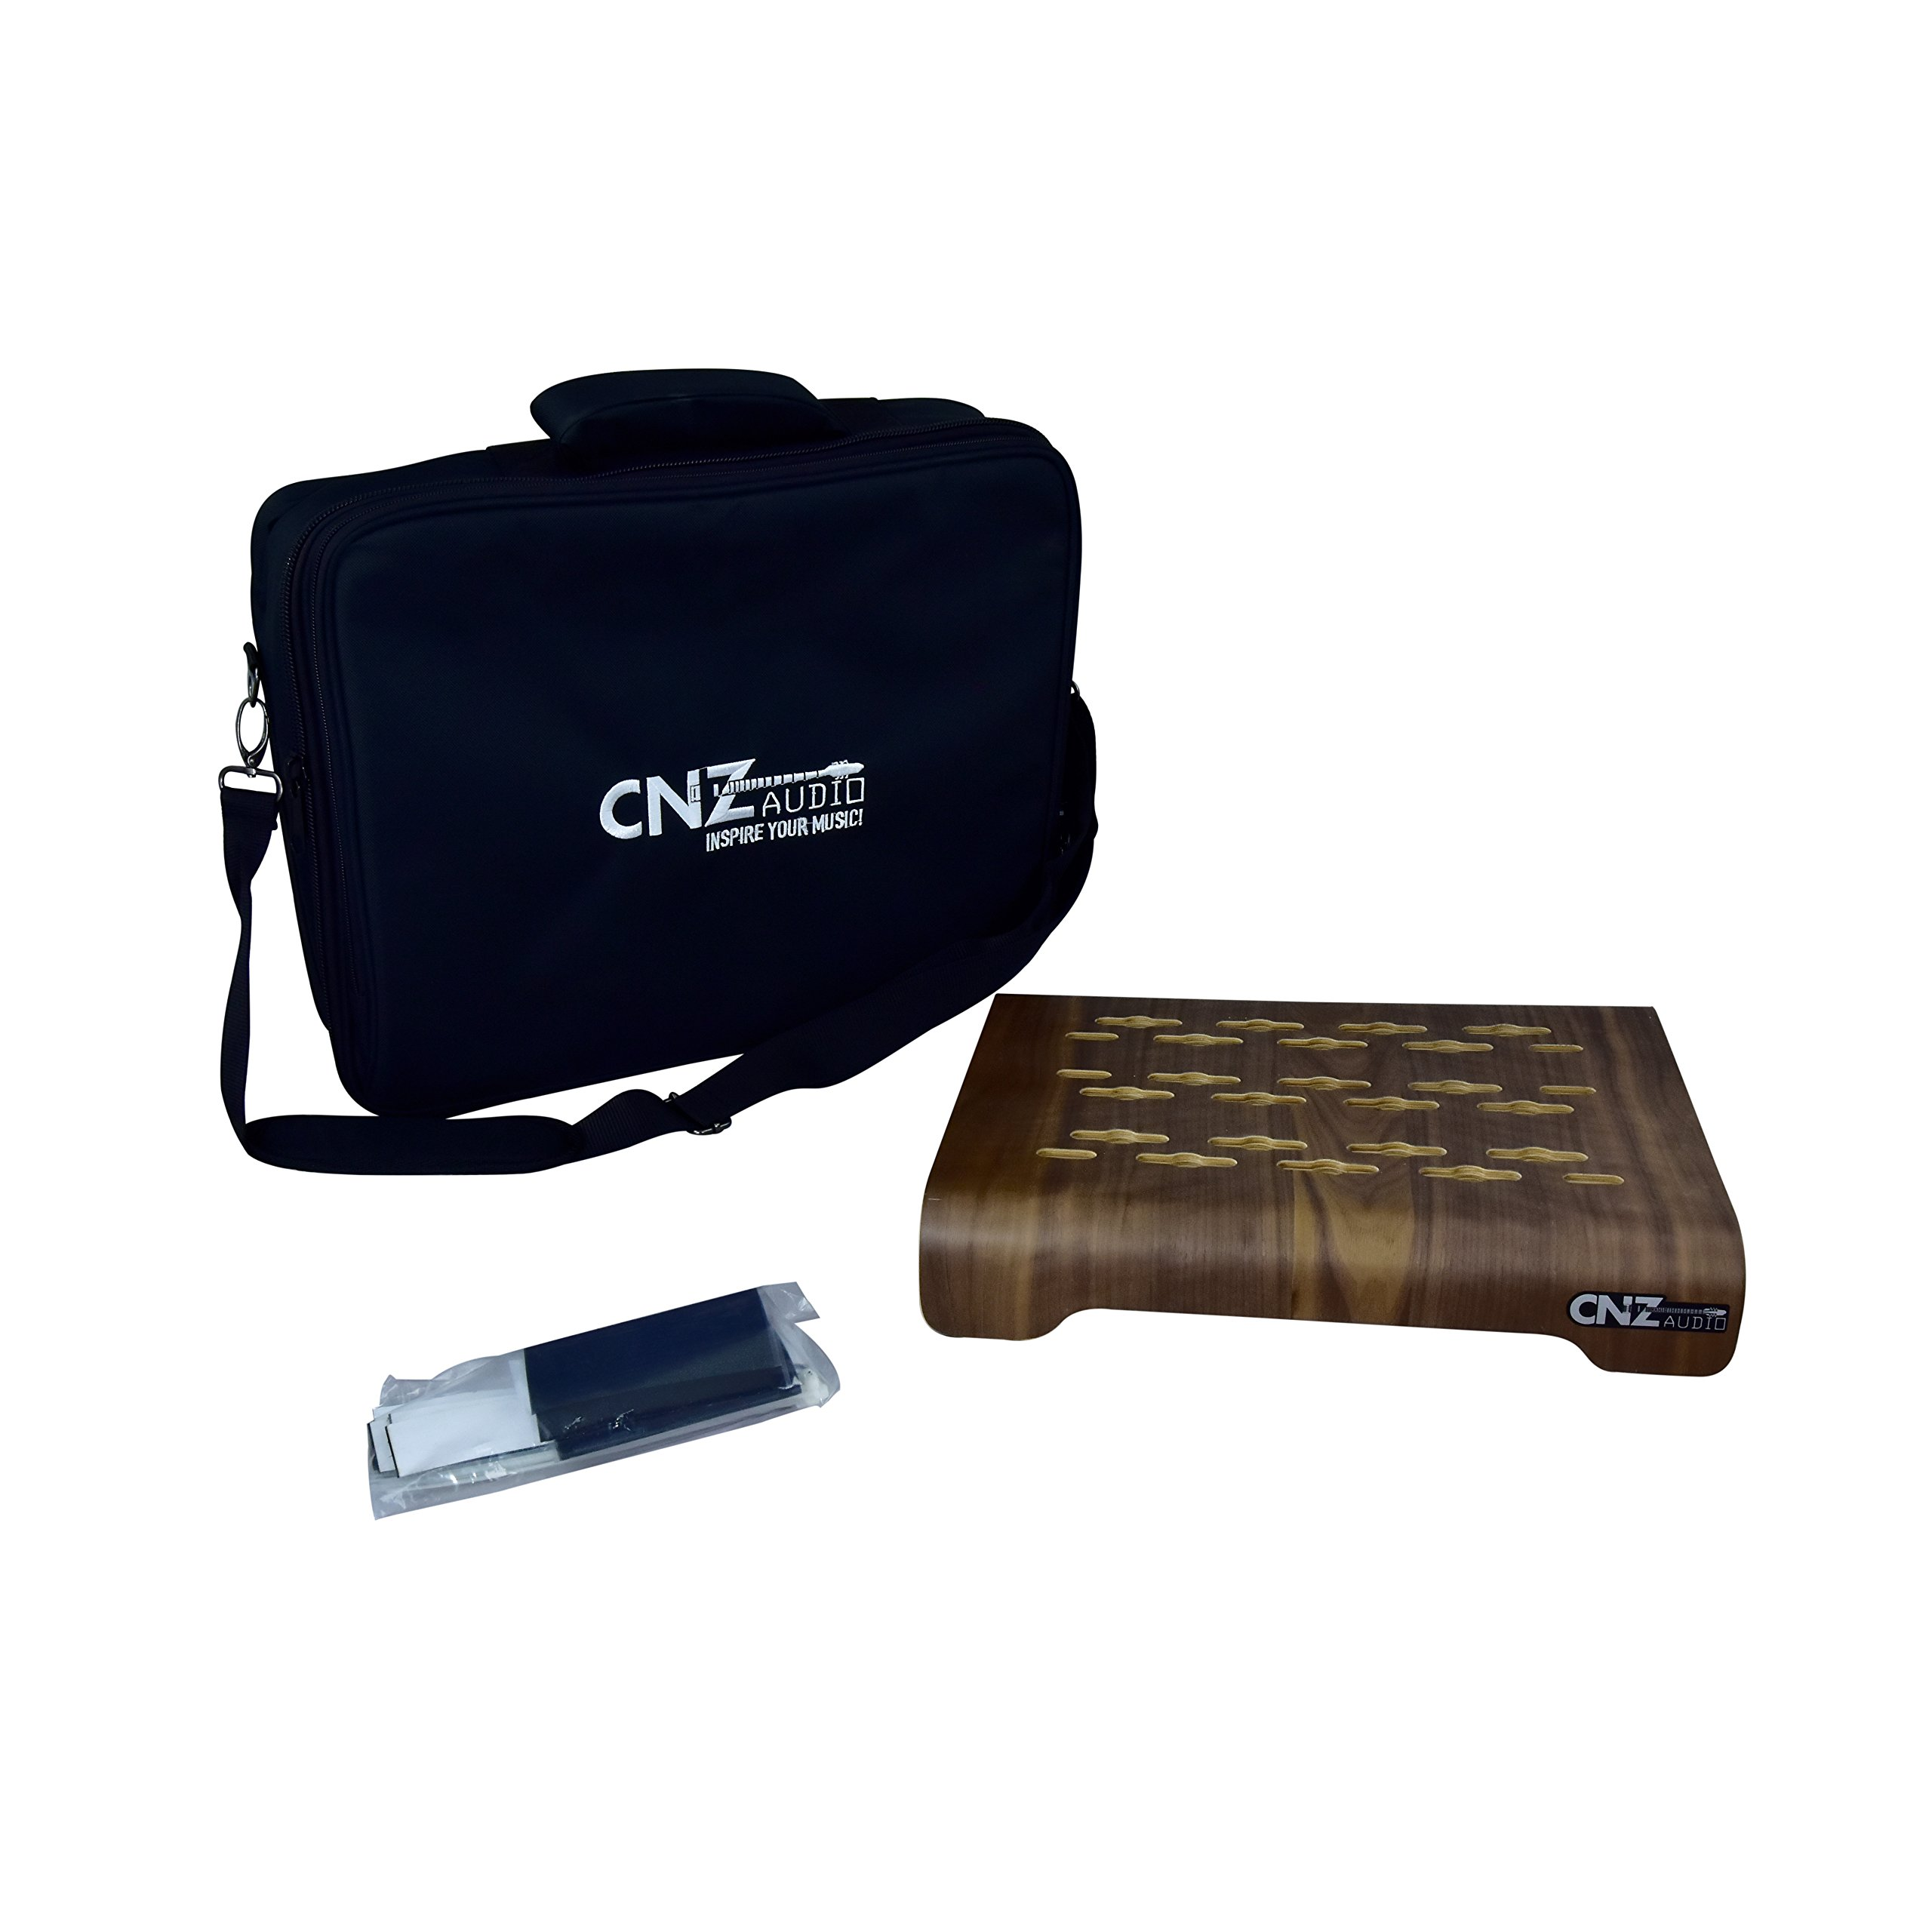 CNZ Audio Wooden Pedalboard Jumbo with Padded Case, Shoulder Strap, Velcro Tape and Zip Ties